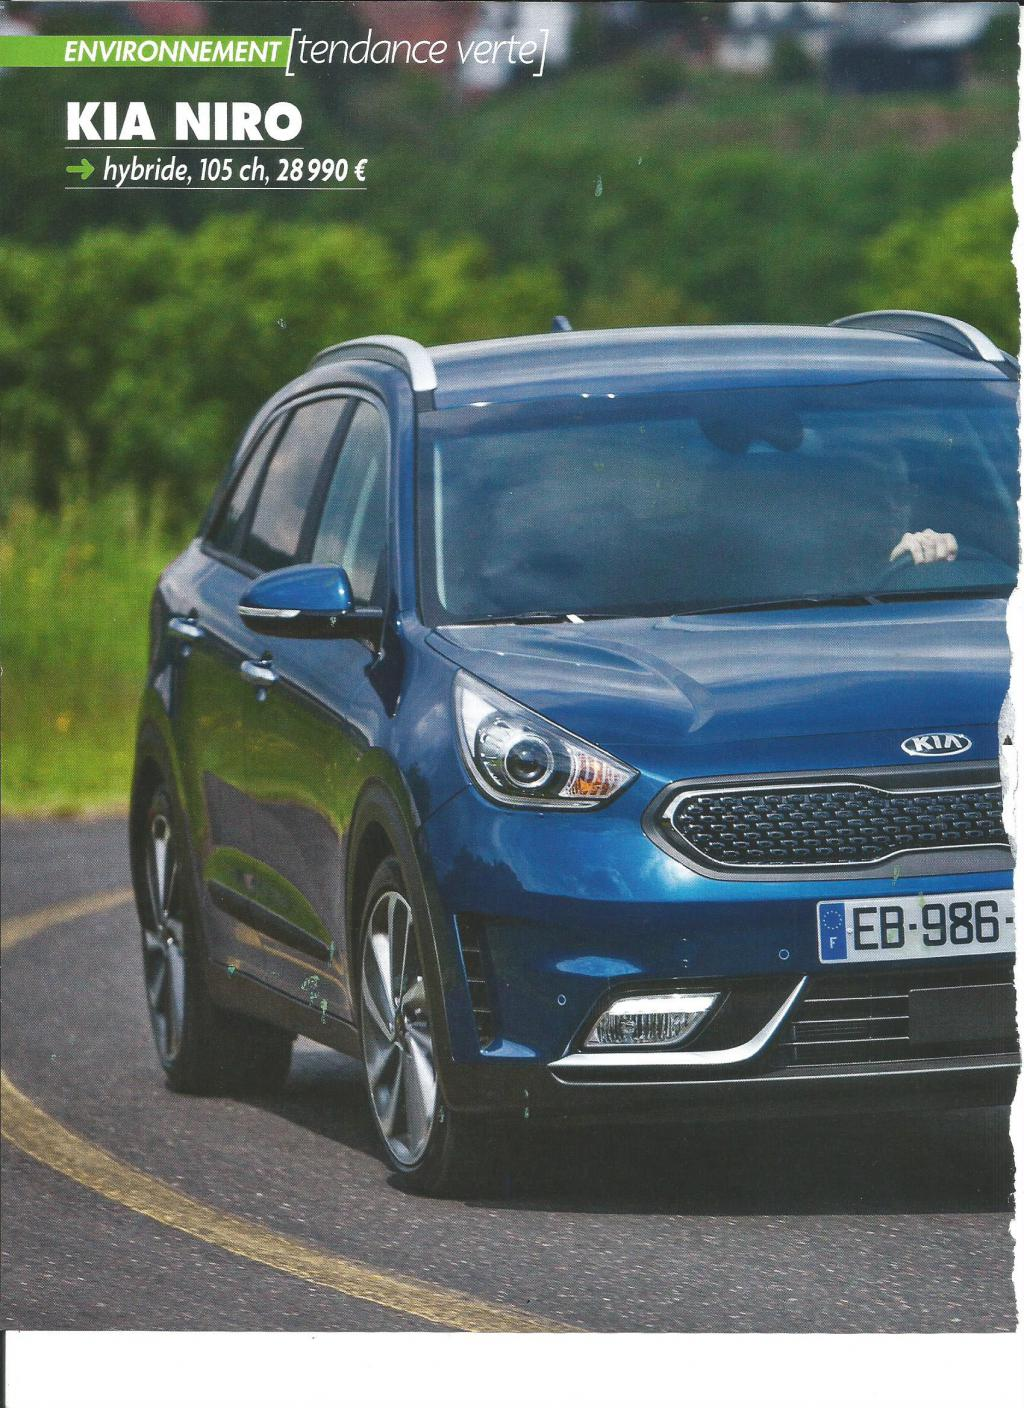 passion suv test kia niro version hybride a 28990 euros 0 malus et pas de bonus automoto. Black Bedroom Furniture Sets. Home Design Ideas